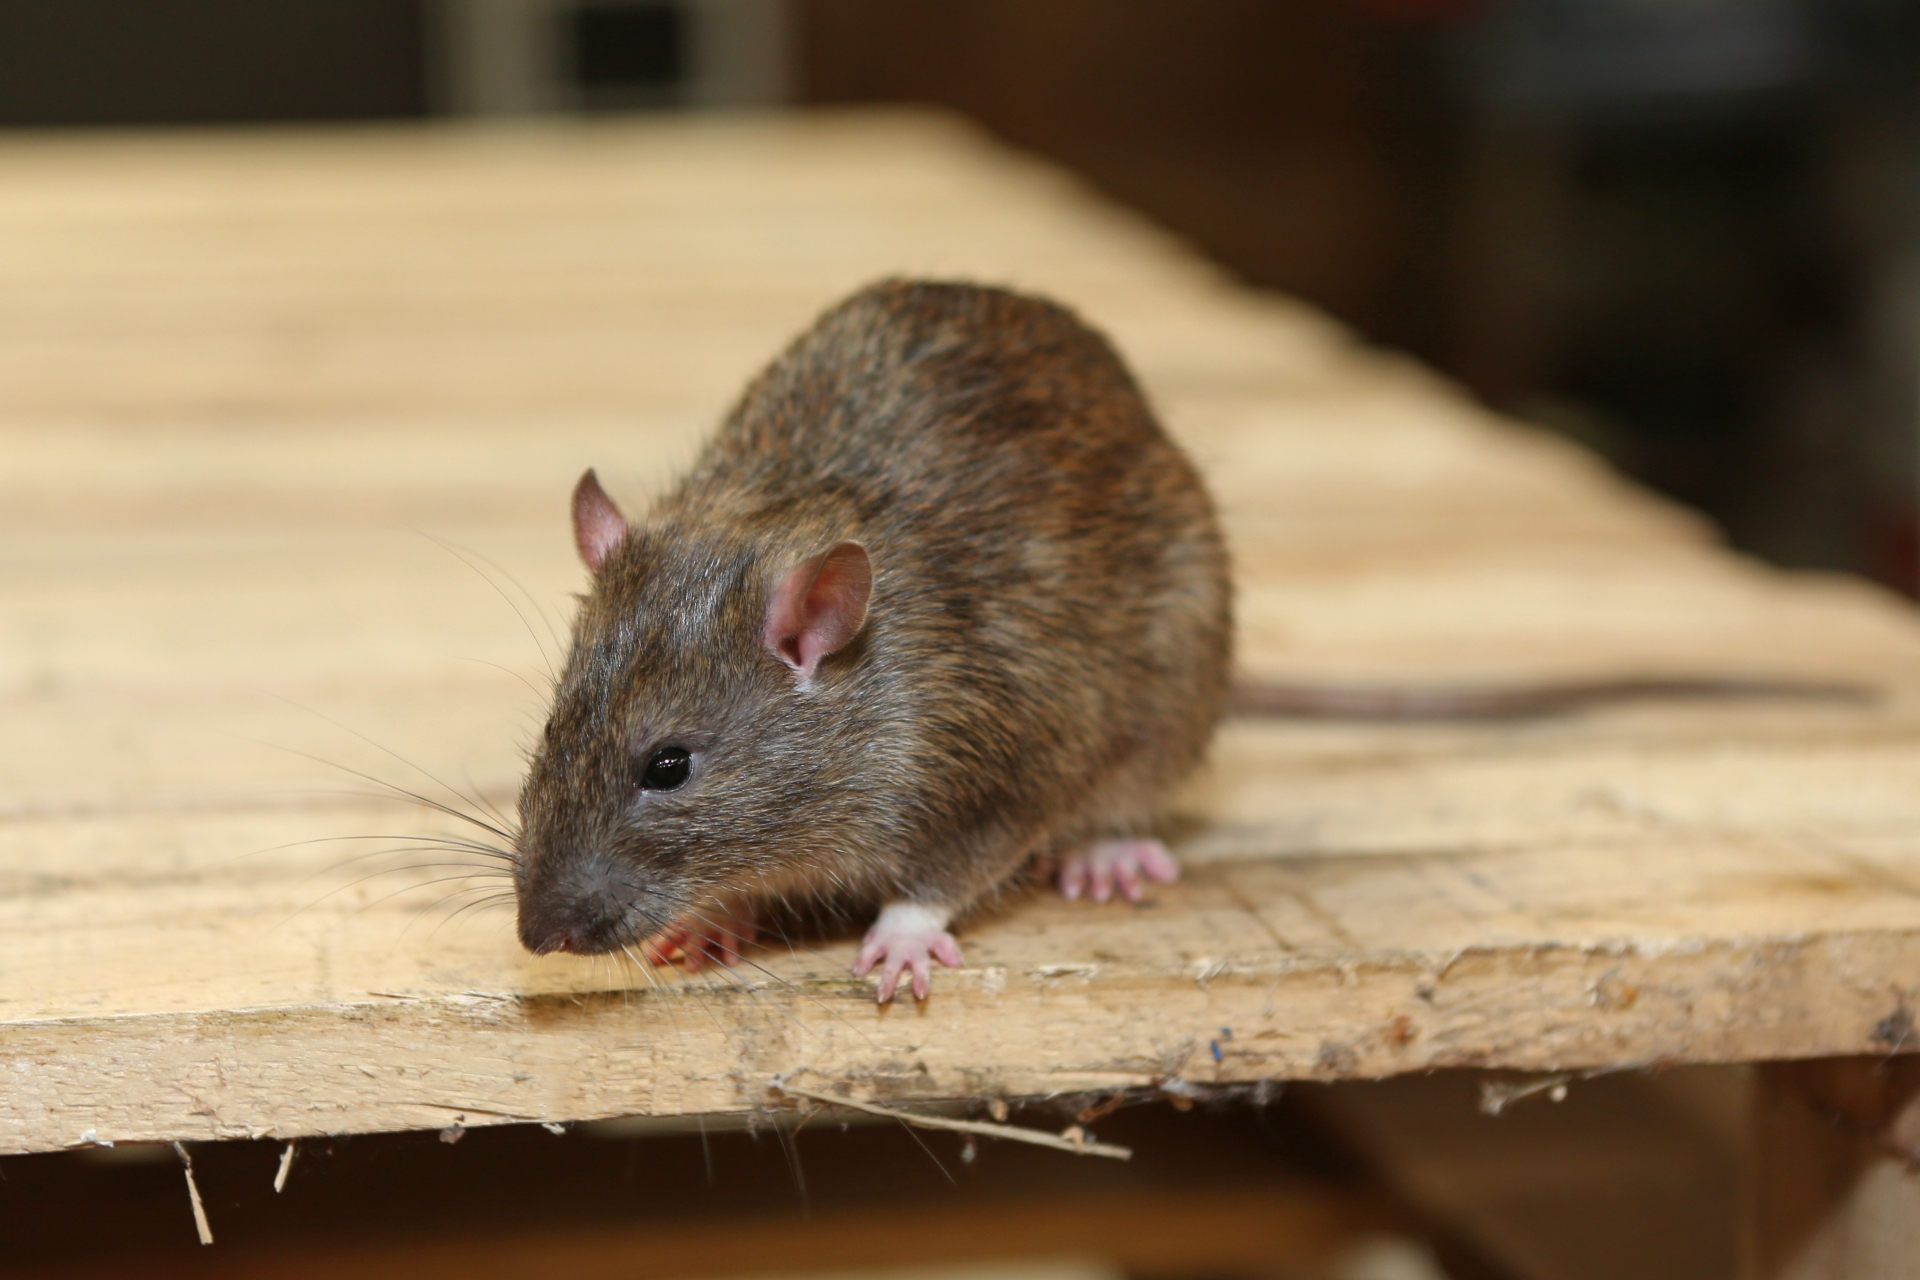 Rat Control, Pest Control in Paddington, W2. Call Now 020 8166 9746